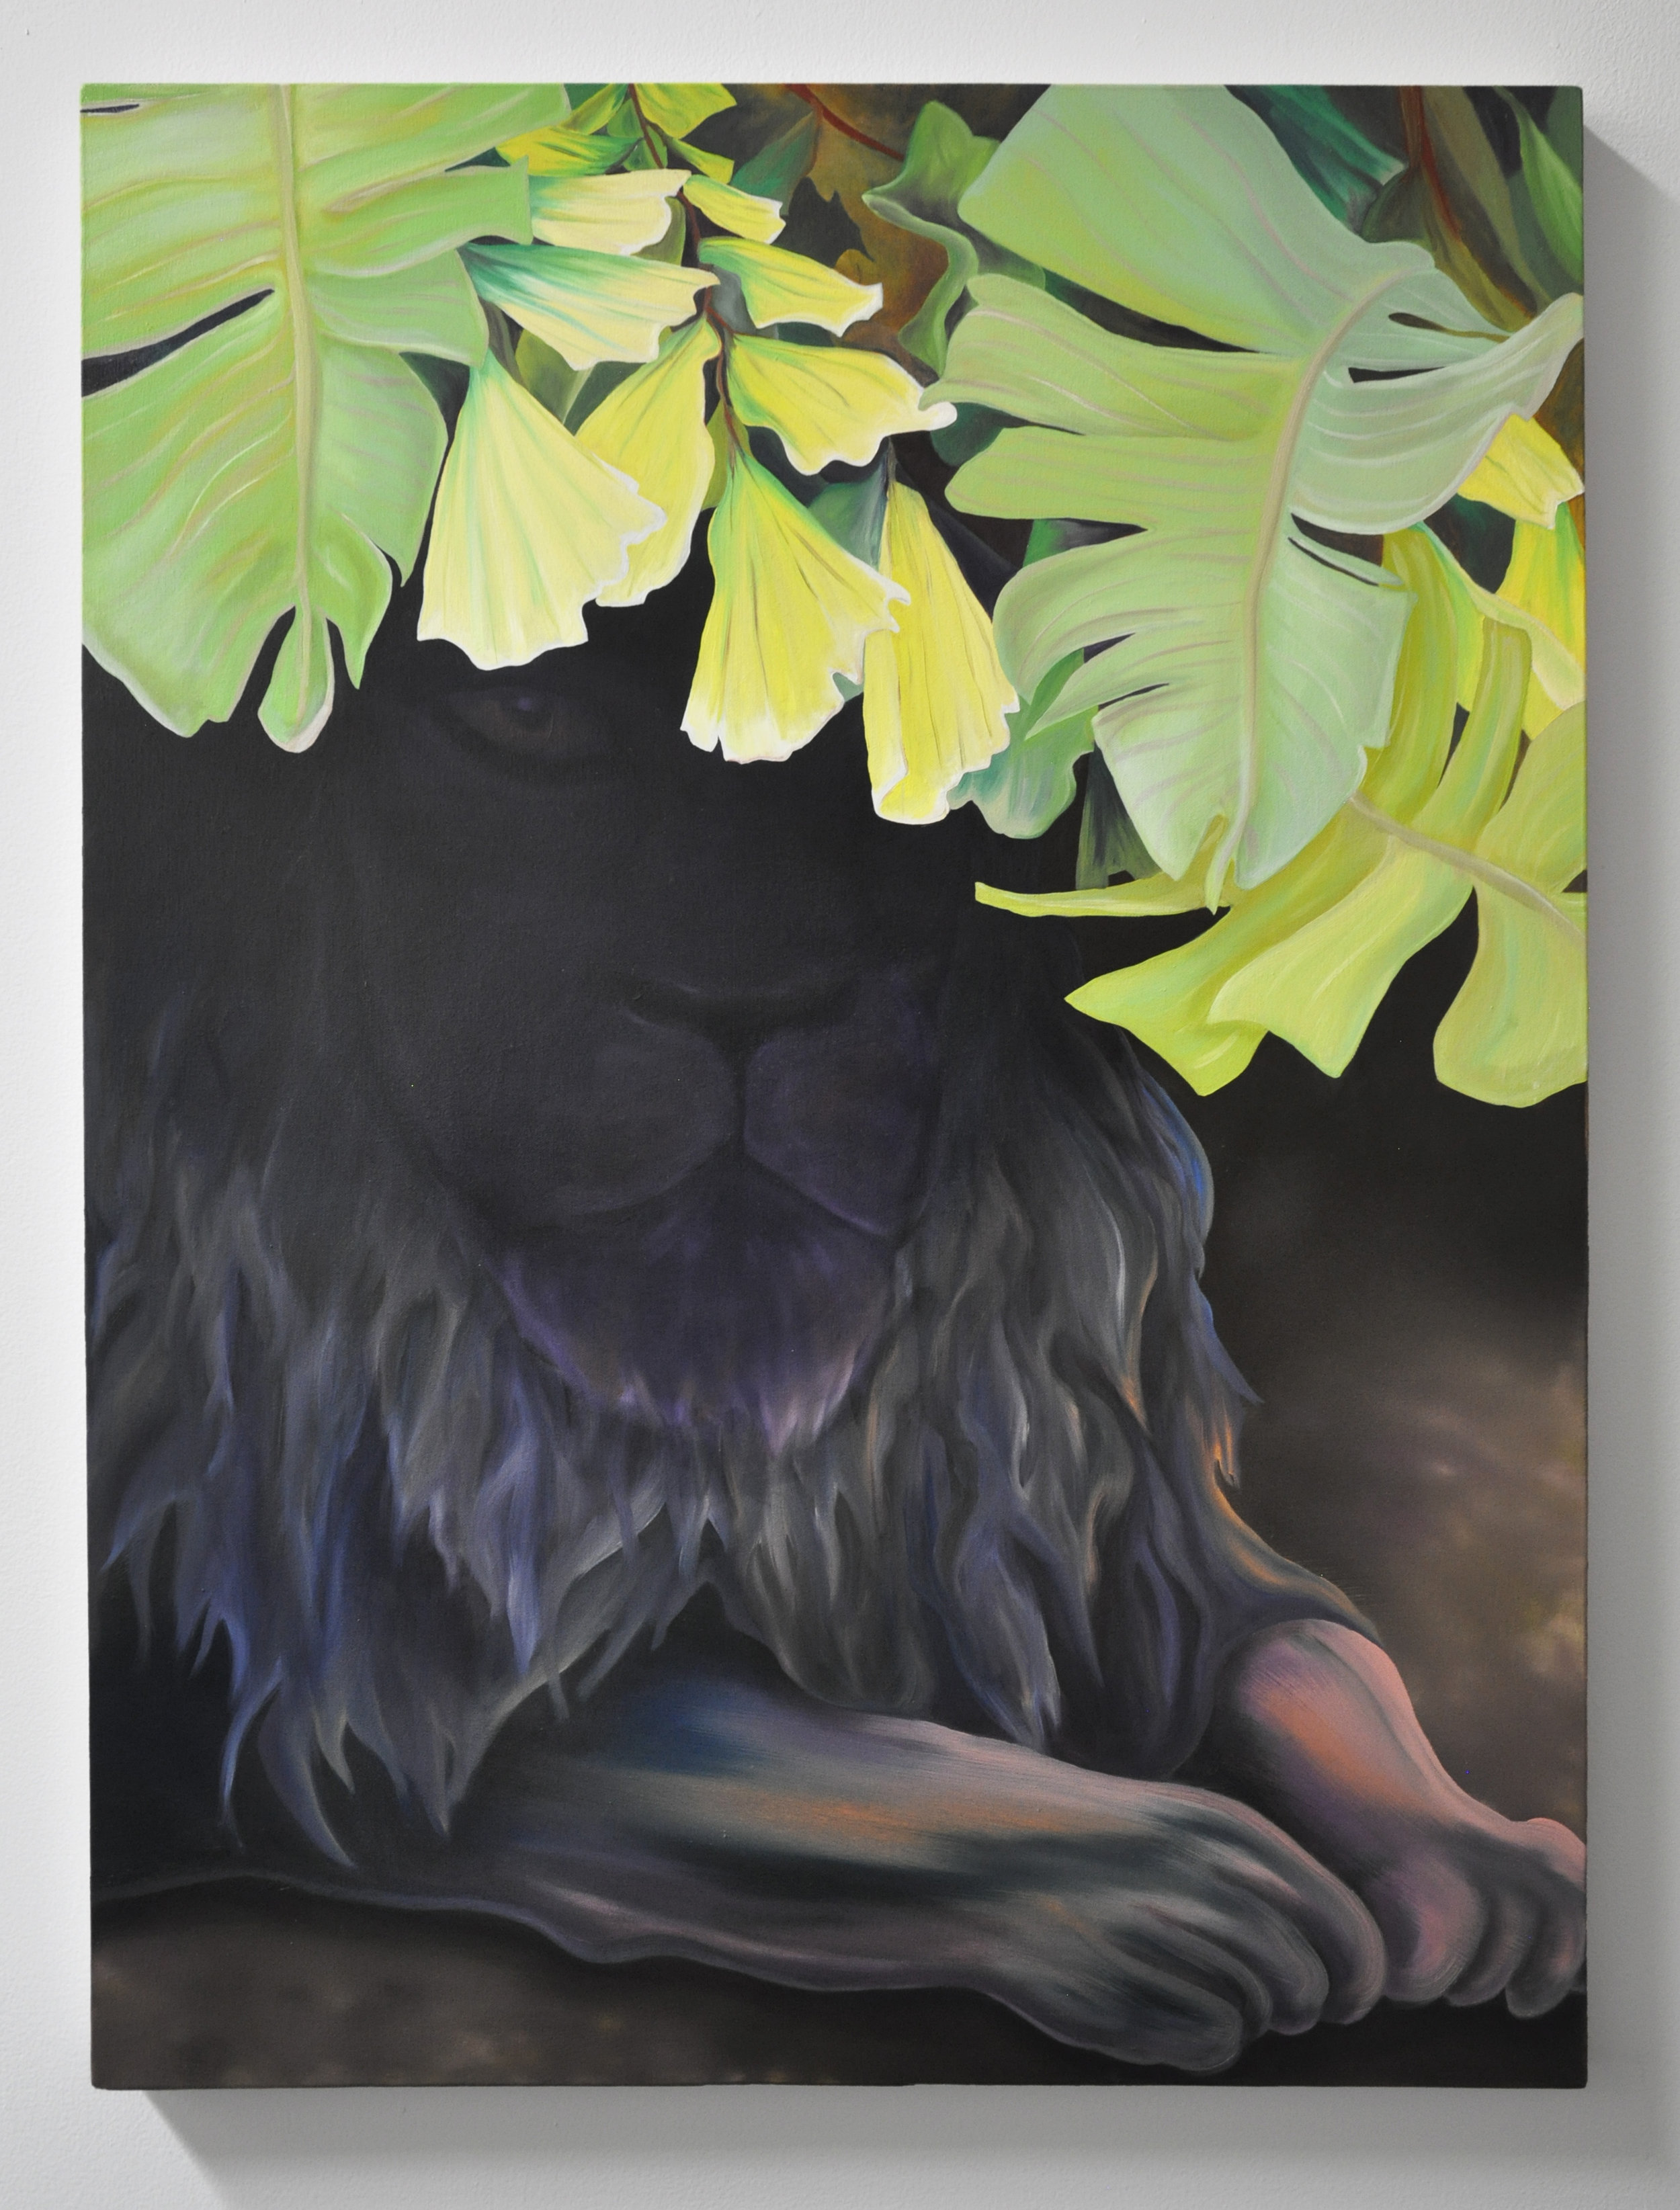 Courtney Johnson, Lion, oil on canvas, 30 x 40 in, 2019